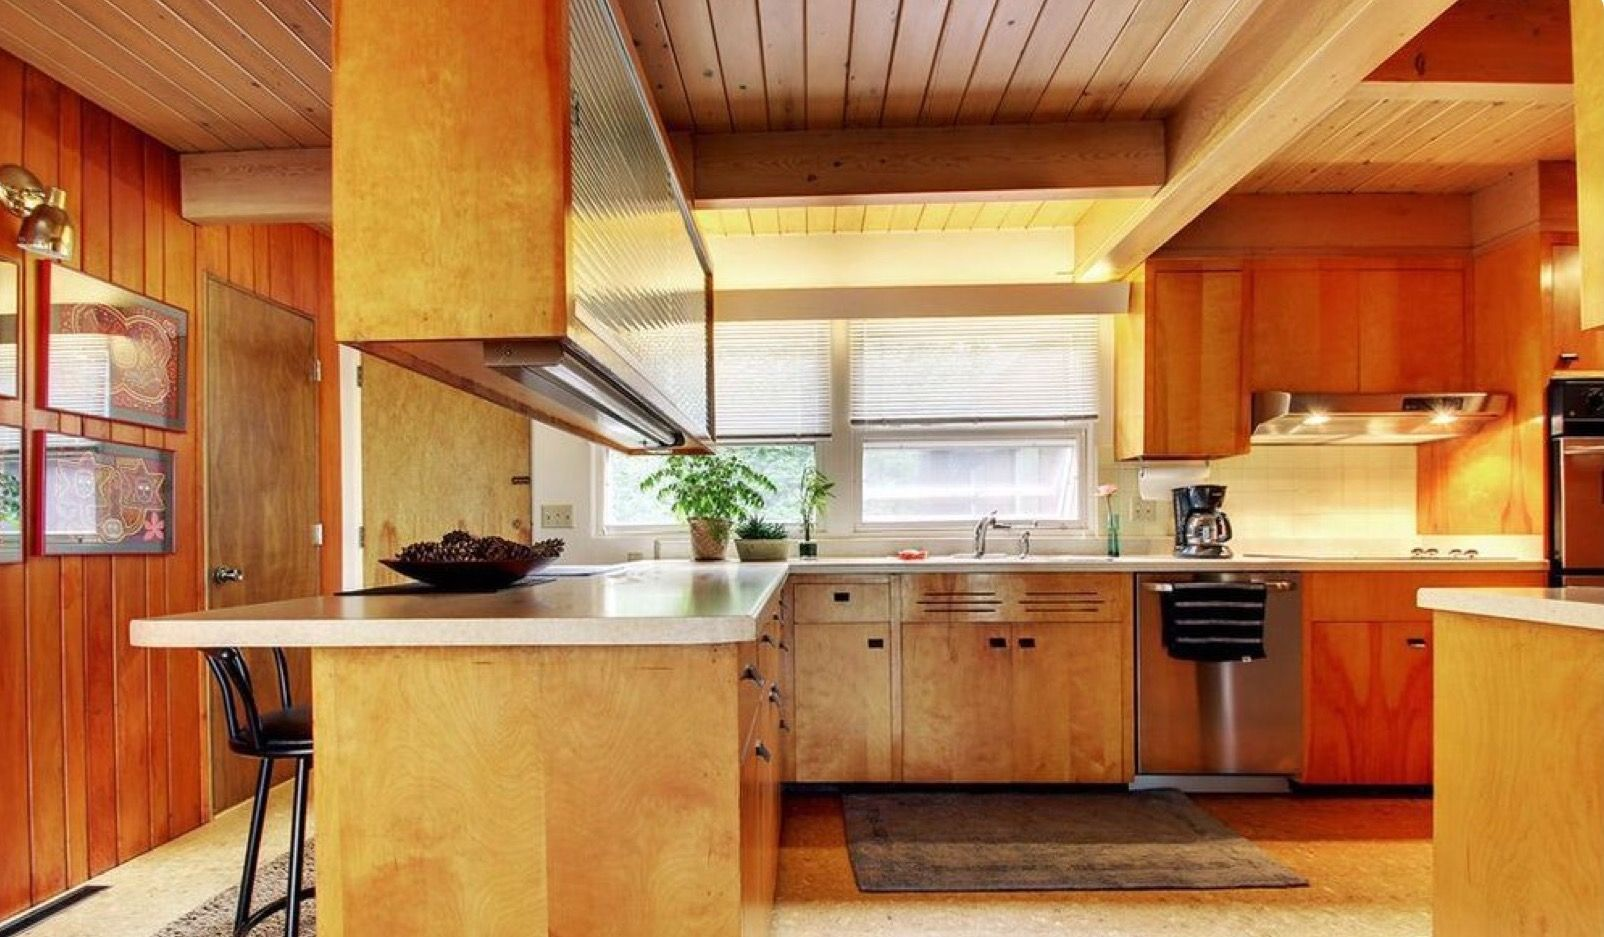 Pin By Sue Rutherford On Mid Century Kitchens Glass Kitchen Cabinets Kitchen Cabinet Remodel New Kitchen Cabinets